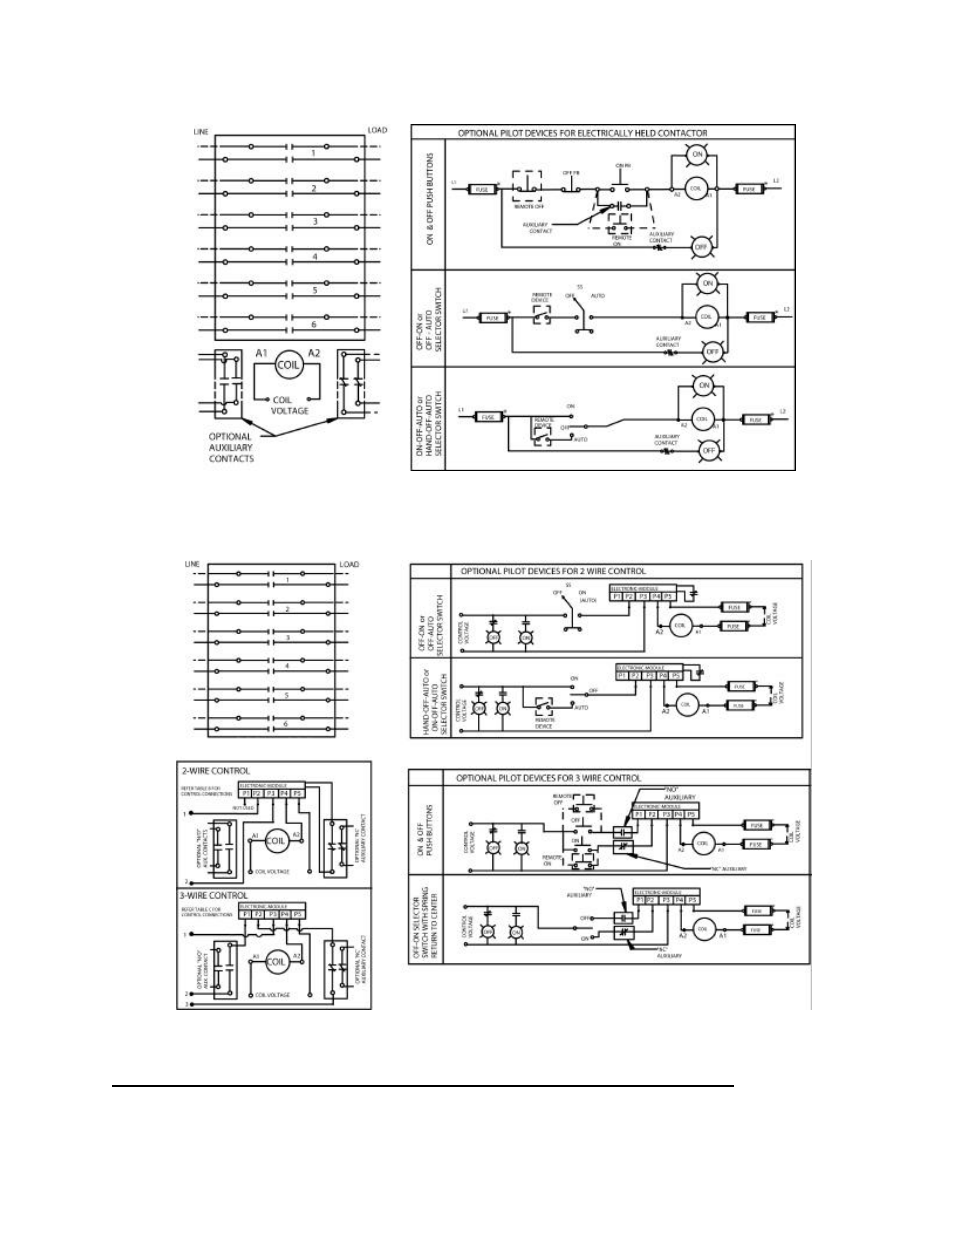 ge industrial solutions cr460 lighting contactor series page4 ge industrial solutions cr460 lighting contactor series user electrically held contactor wiring diagram at reclaimingppi.co